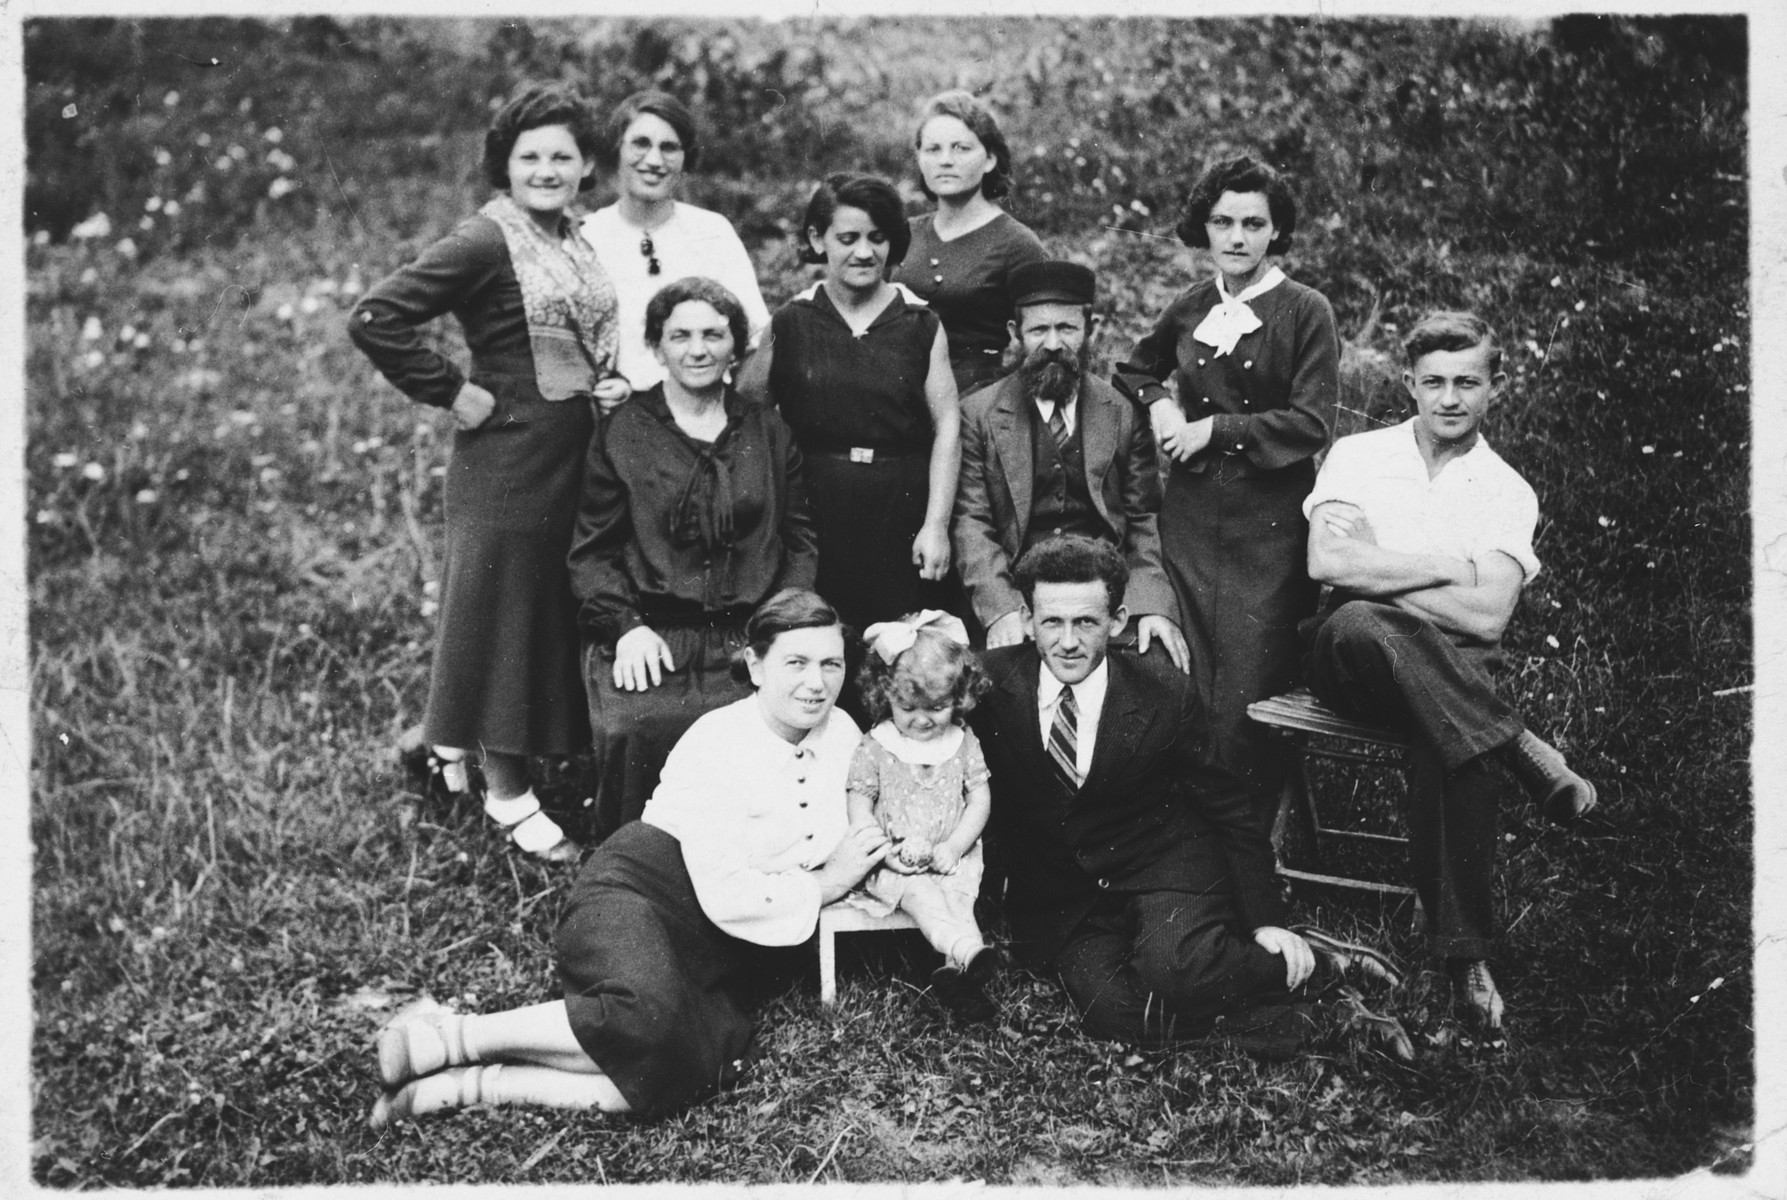 Portrait of the extended Rajs family.  Lila is sitting in the center.  Her cousin Abeshet is on the far right.  A devoted Communist, he fled to the Soviet Union where he was killed.